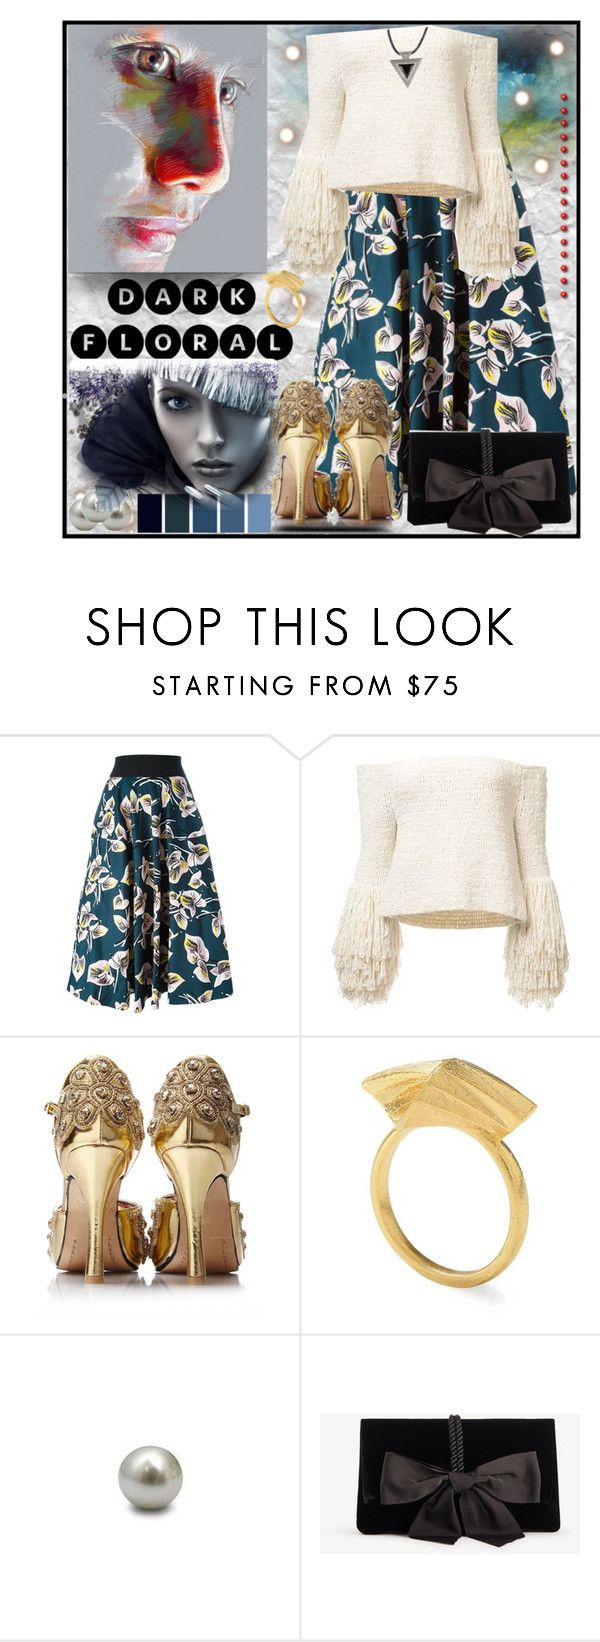 """Dark Florals"" by jeneric2015 ❤ liked on Polyvore featuring Marni, S/H KOH, Ann Taylor and darkflorals"